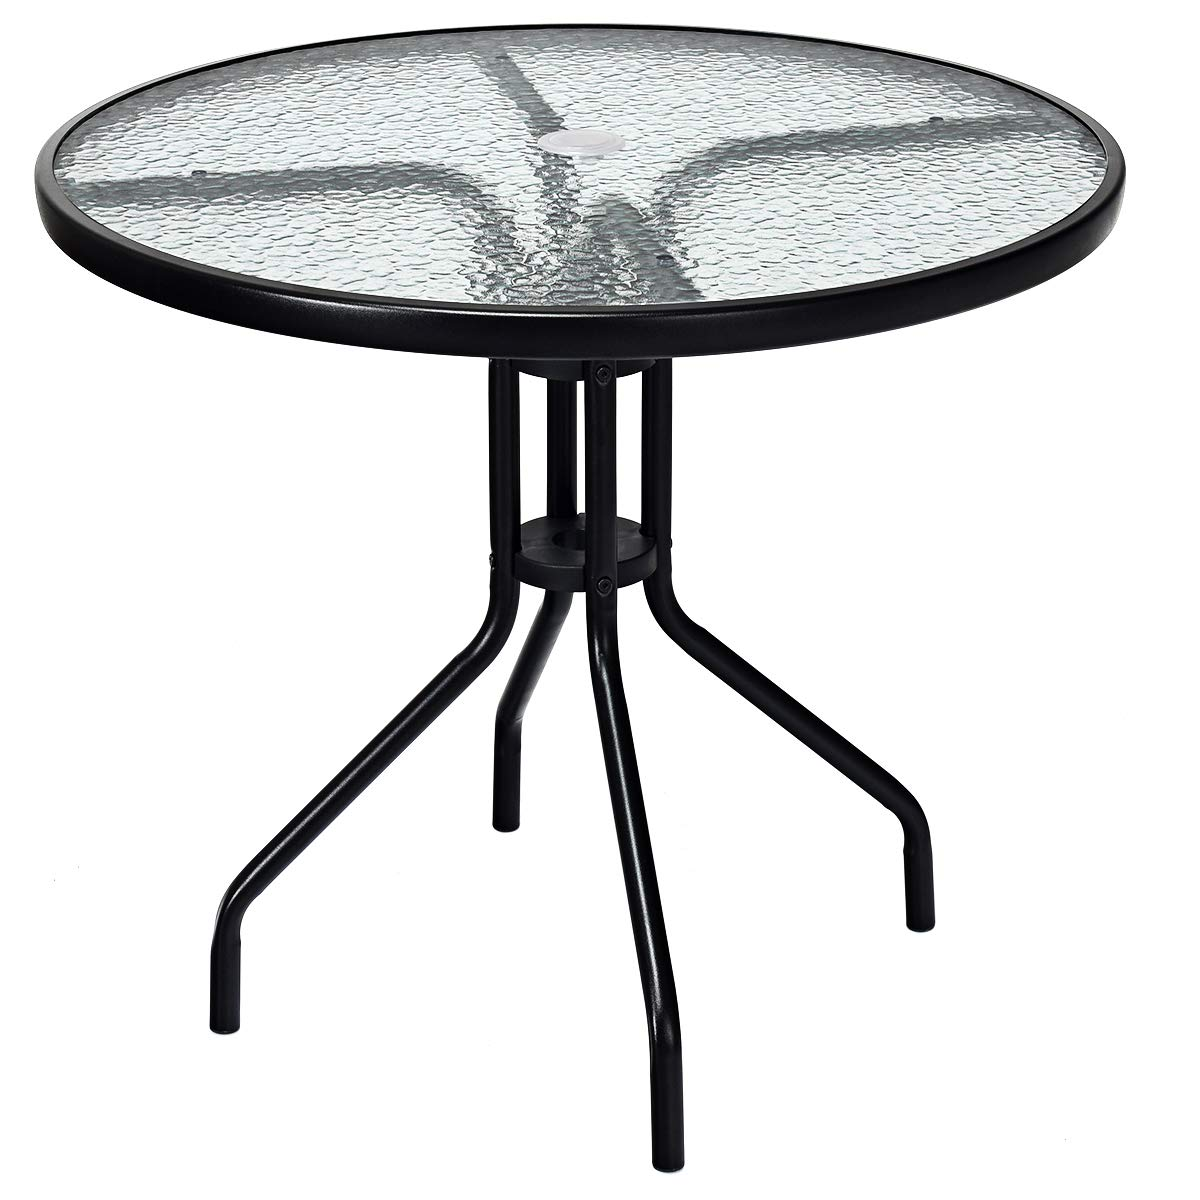 Tangkula 32 Outdoor Patio Table, Round Bistro Table with Steel Frame Tempered Glass Top, Commercial Party Event Furniture Conversation Coffee Table for Backyard Lawn Balcony Pool with Umbrella Hole